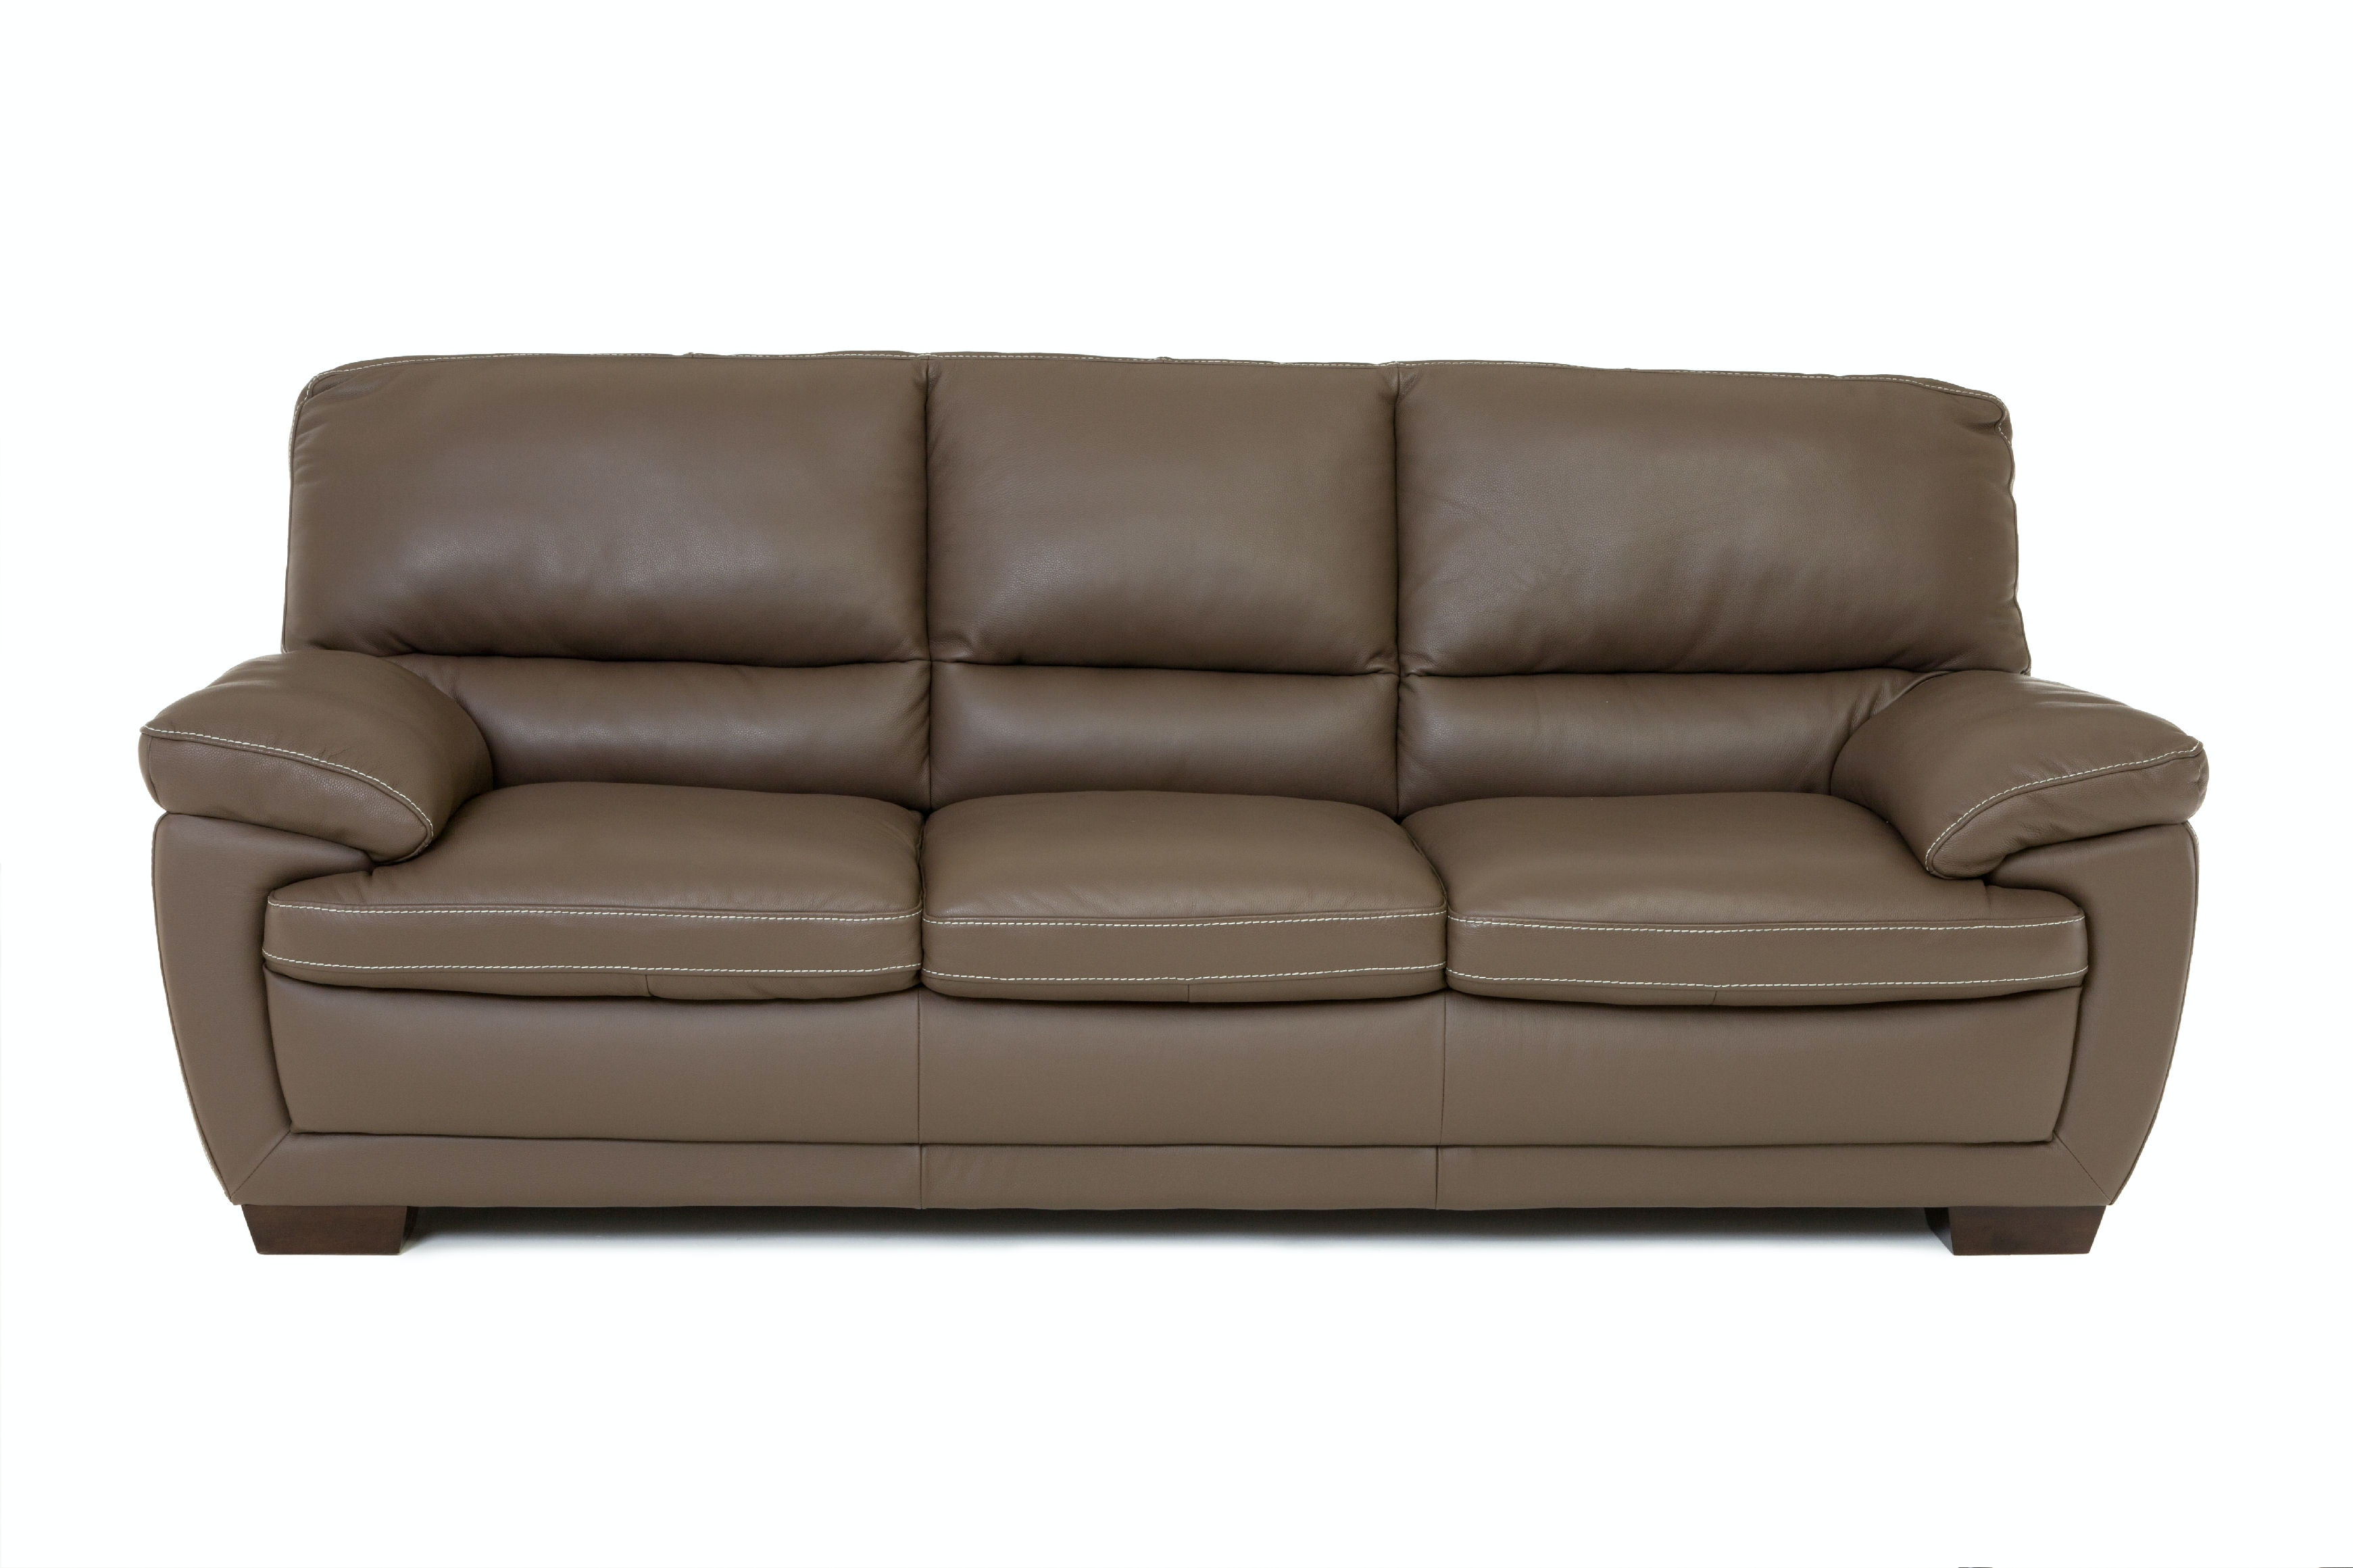 Incroyable Denver Leather Sofa   DARK TAUPE ST:341188